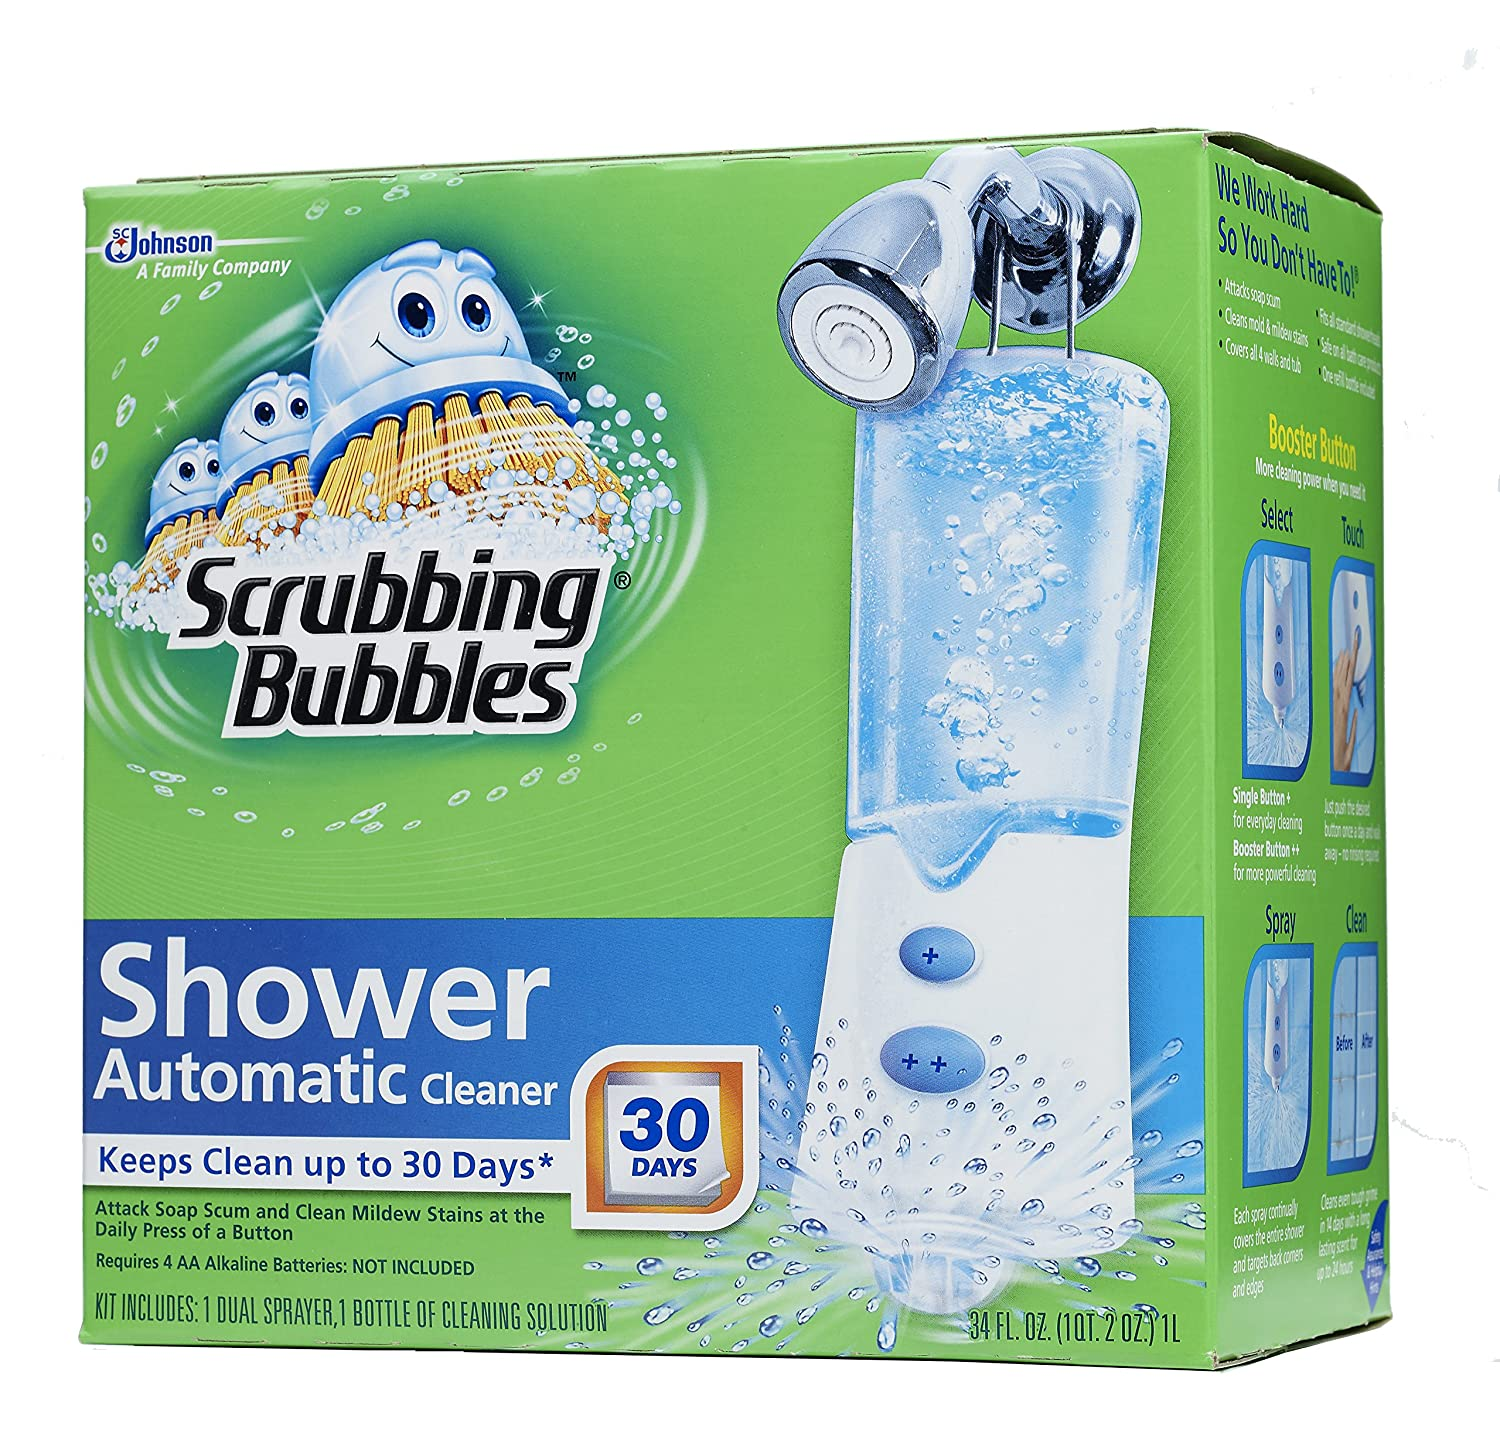 Amazon.com: Scrubbing Bubbles Automatic Shower Cleaner, Starter Kit ...